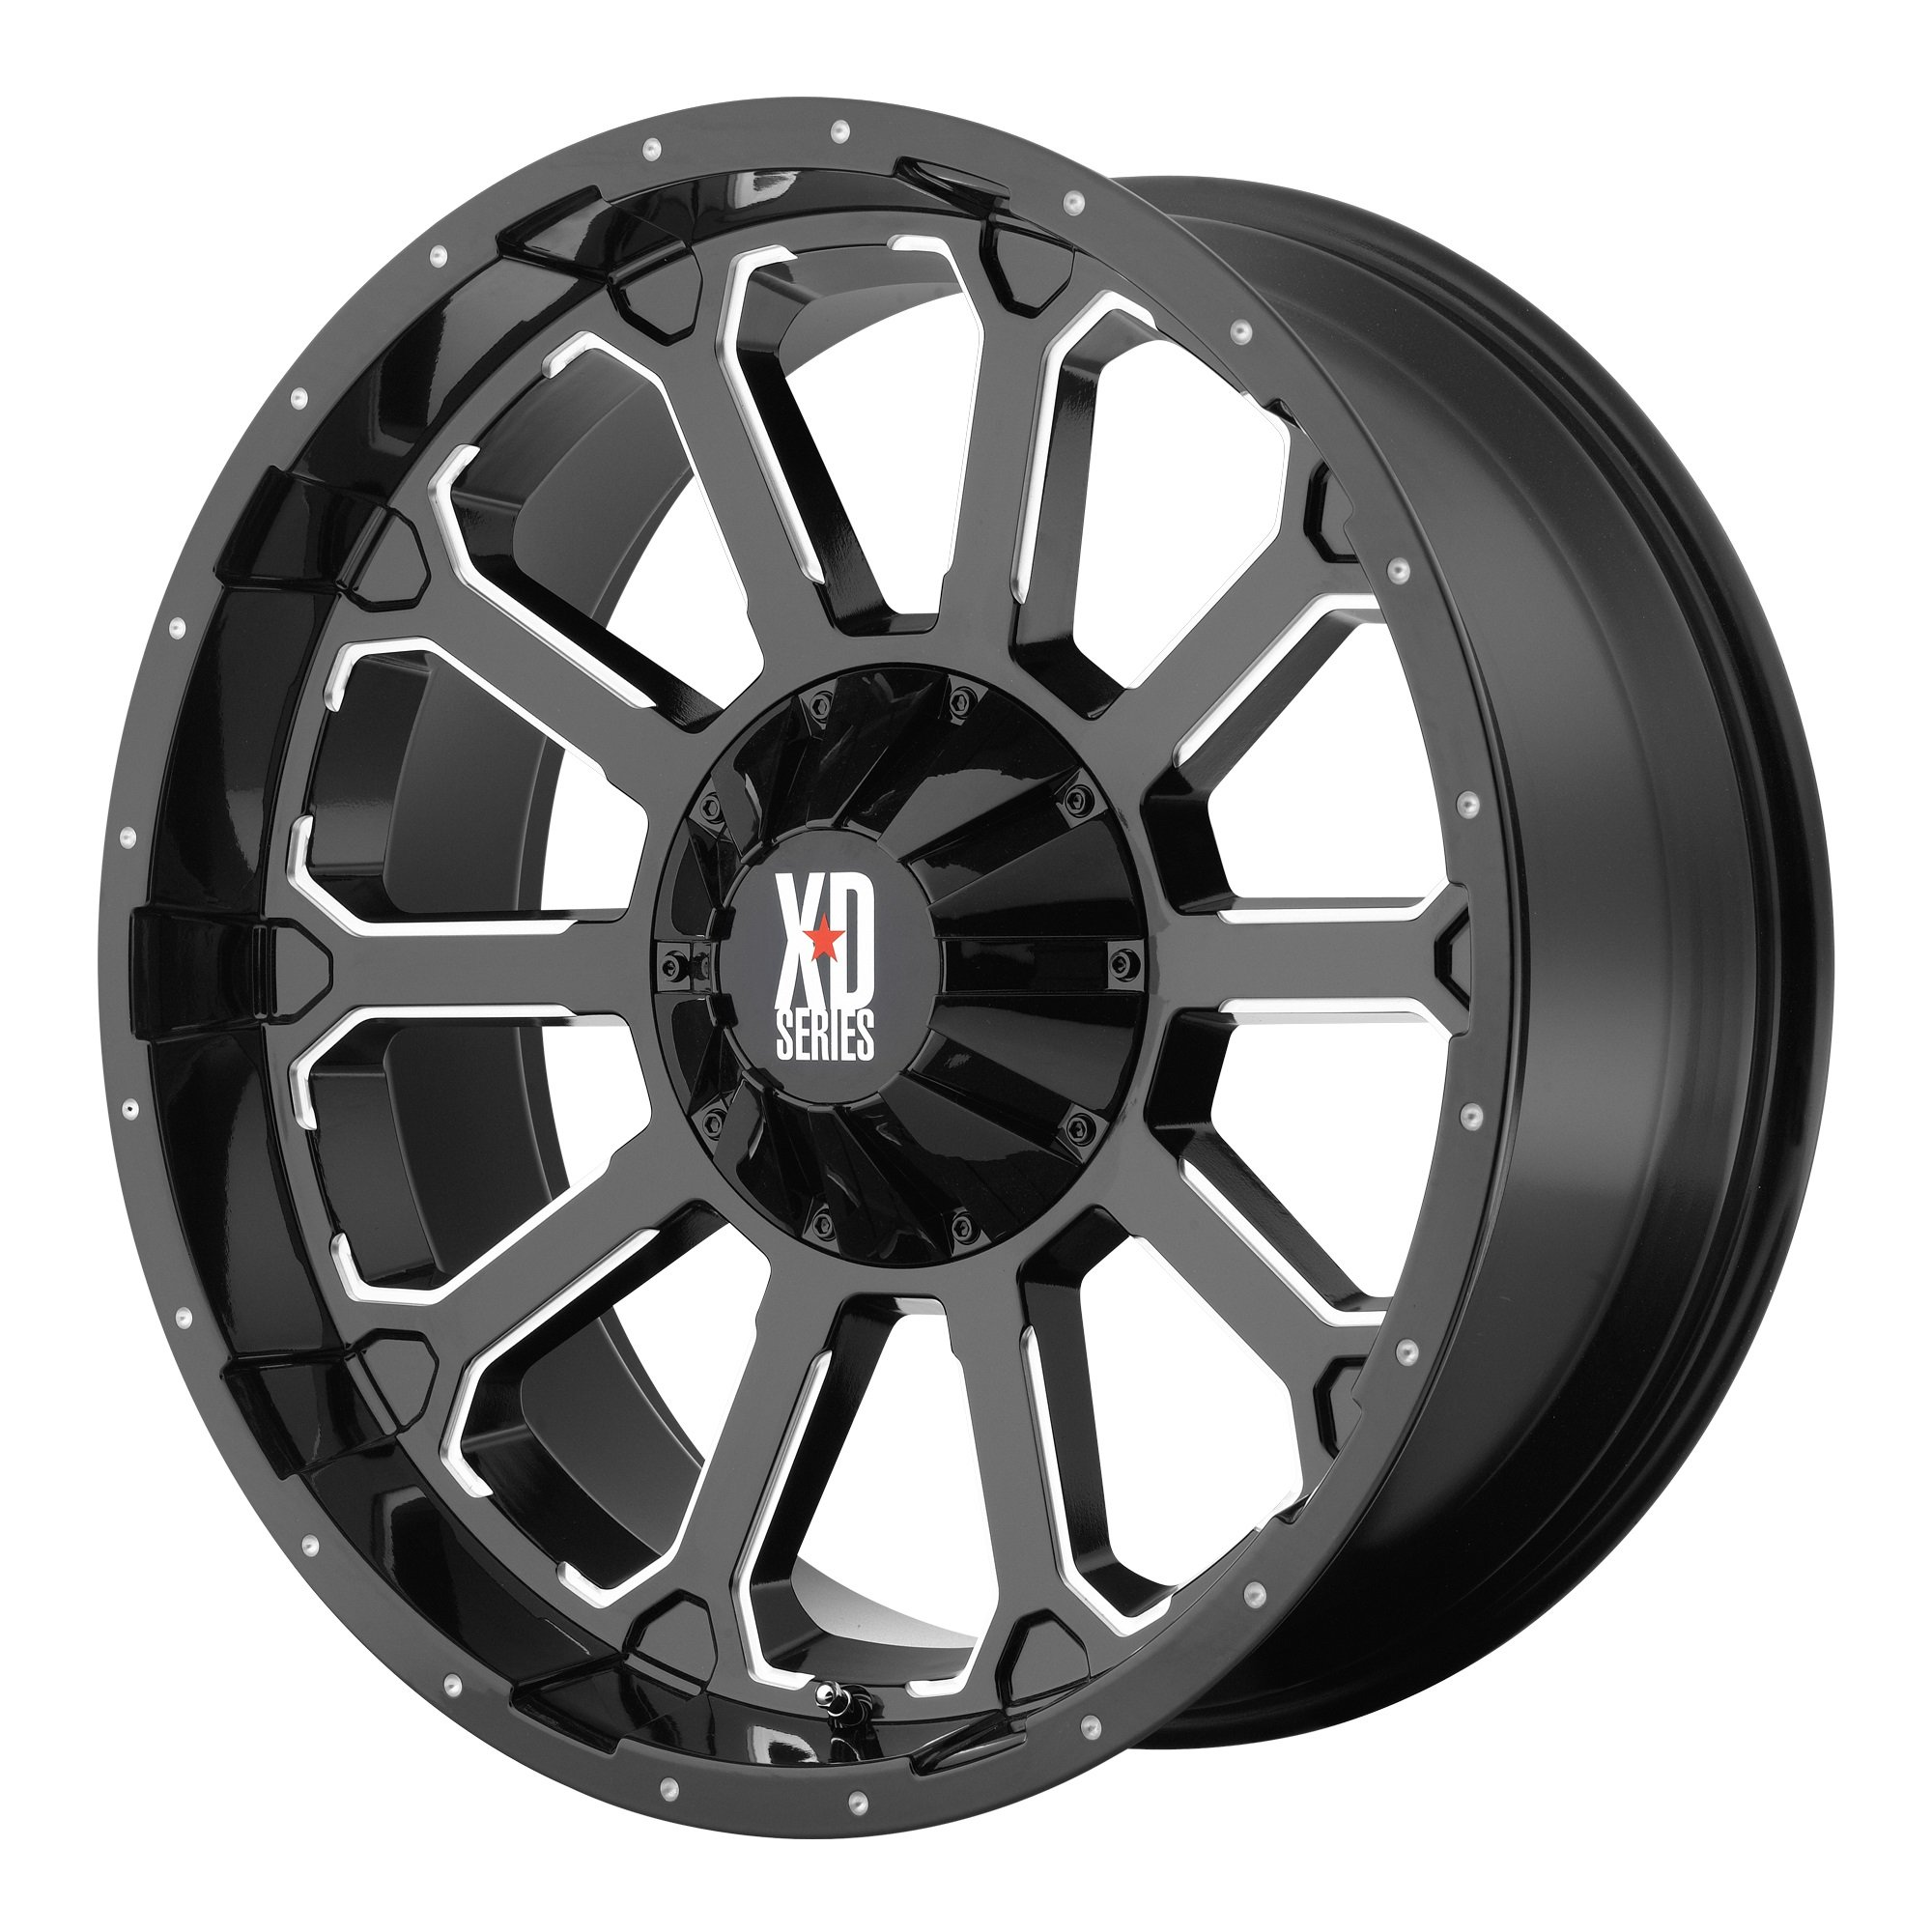 XD Series by KMC Wheels XD806 Bomb Gloss Black Wheel With Milled Accents (20x9''/8x165.1mm, 0mm offset)